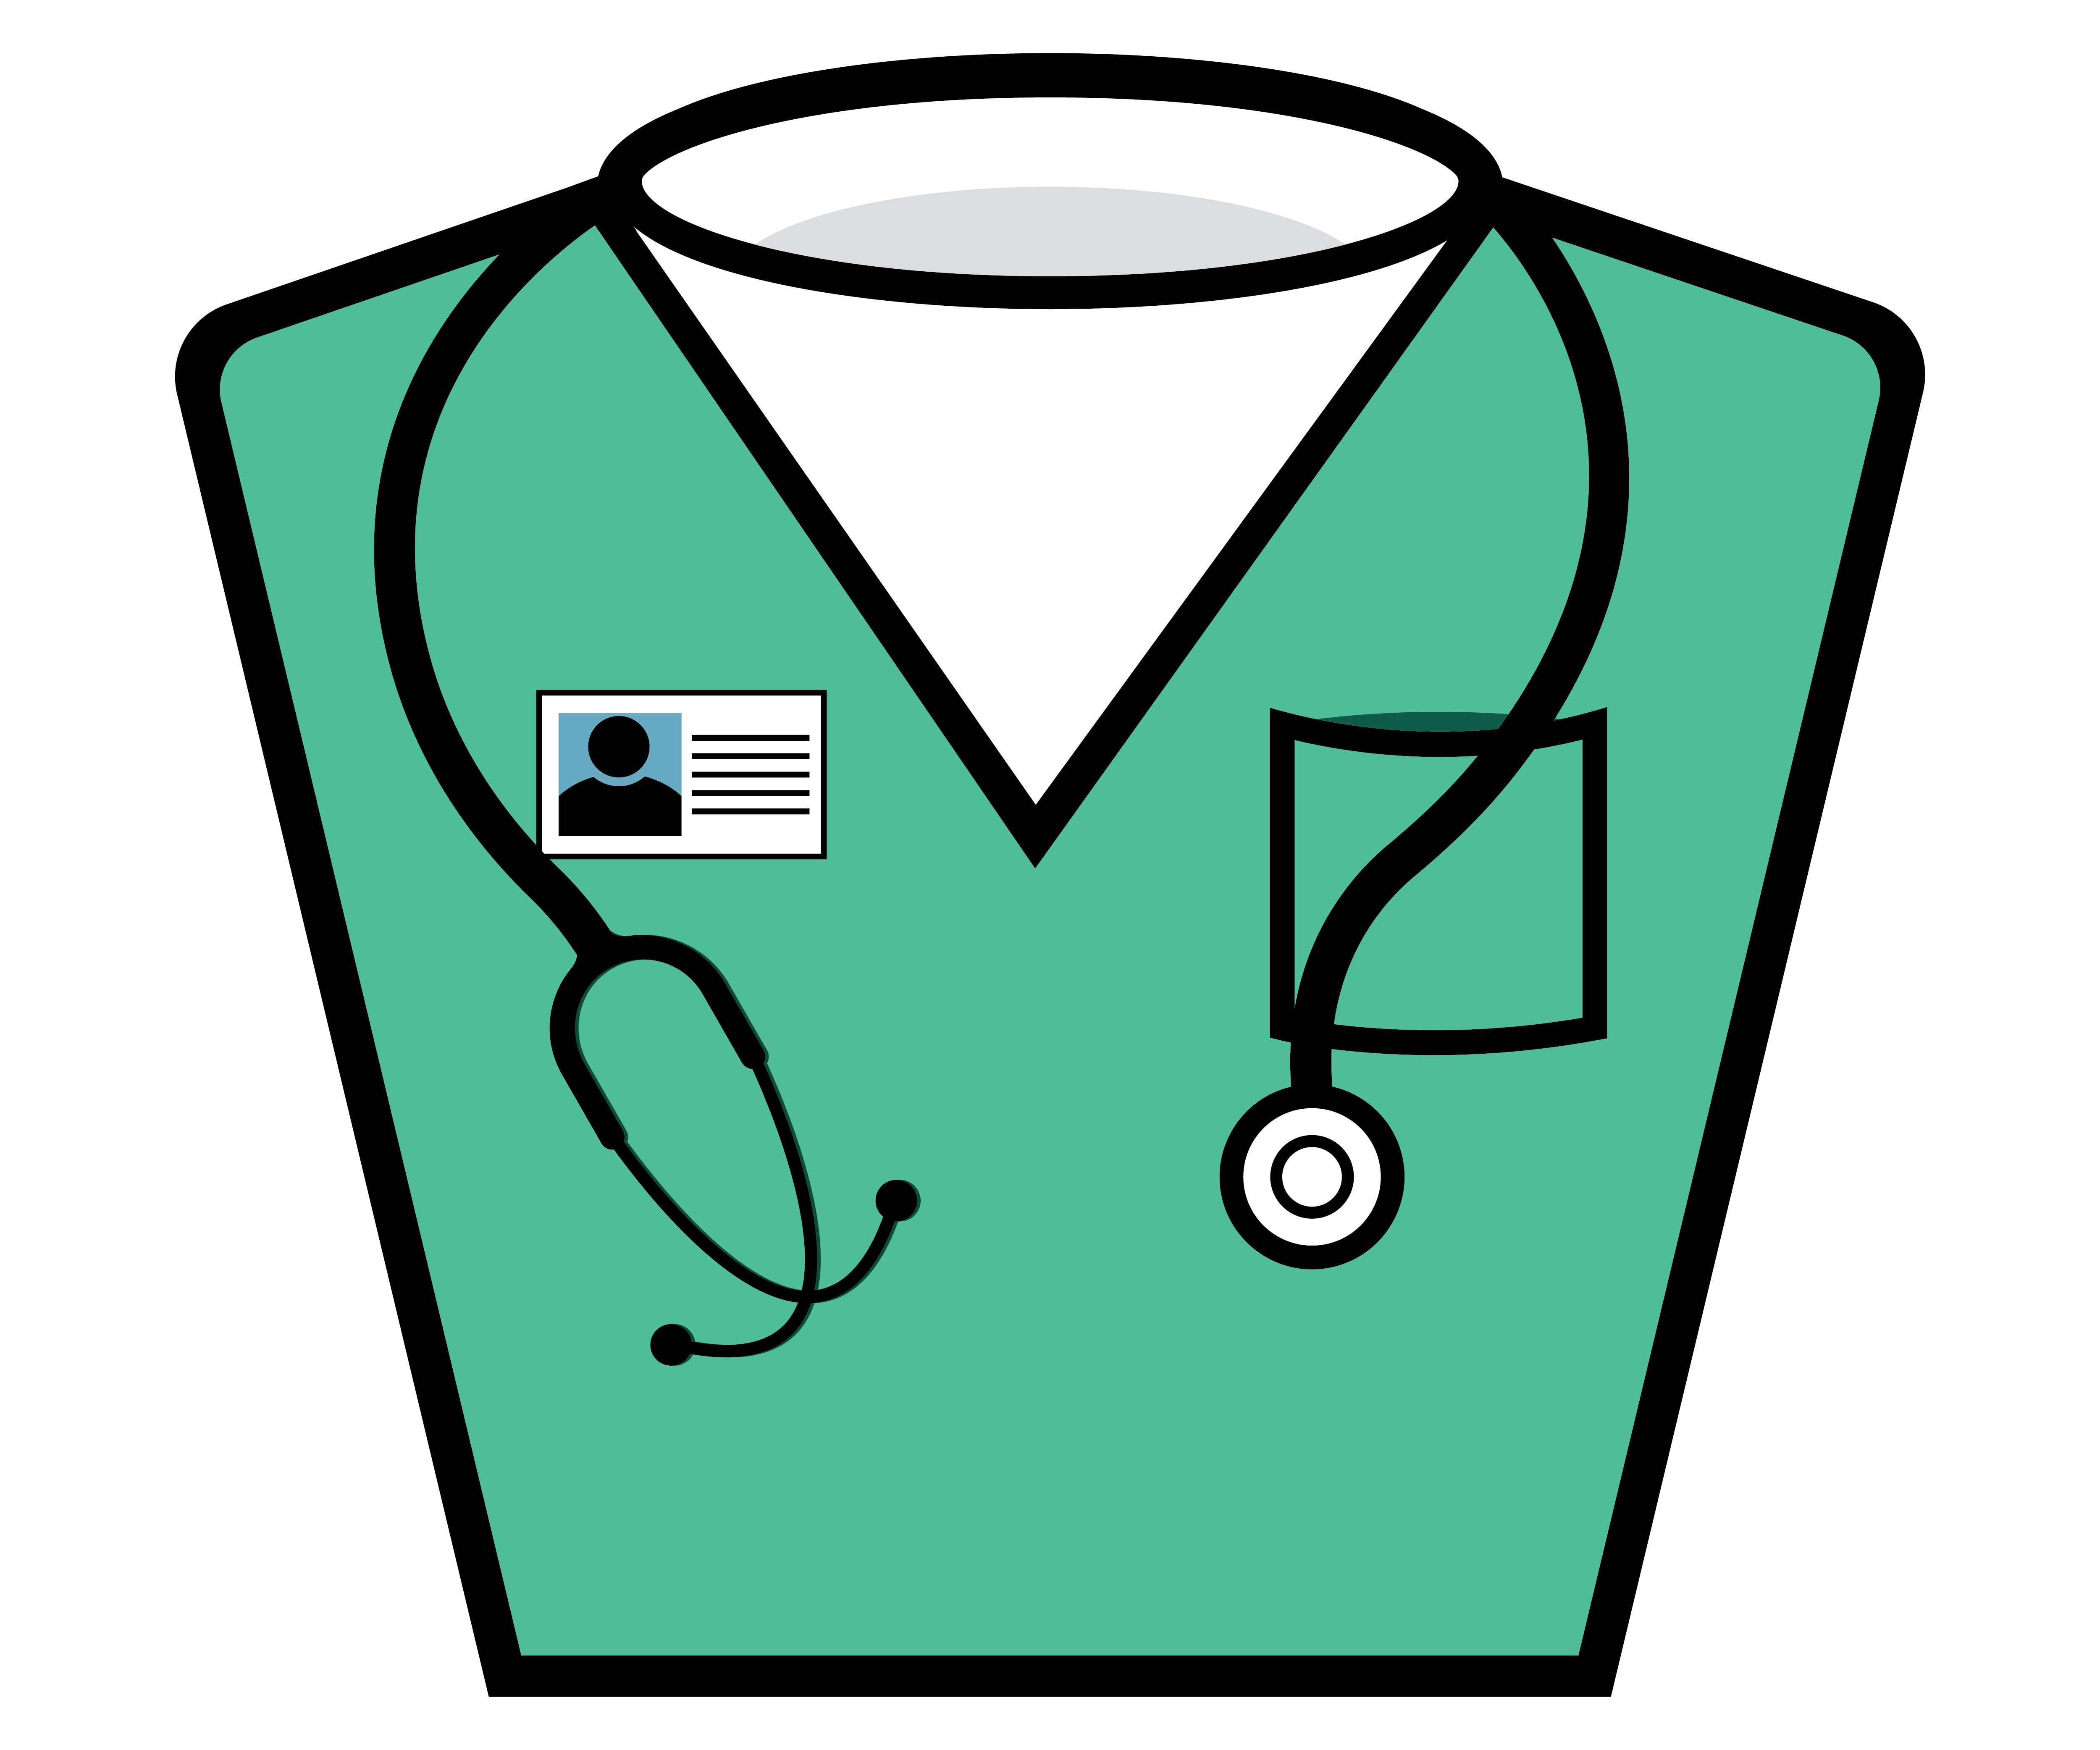 About us generation medics. Doctor clipart clothing